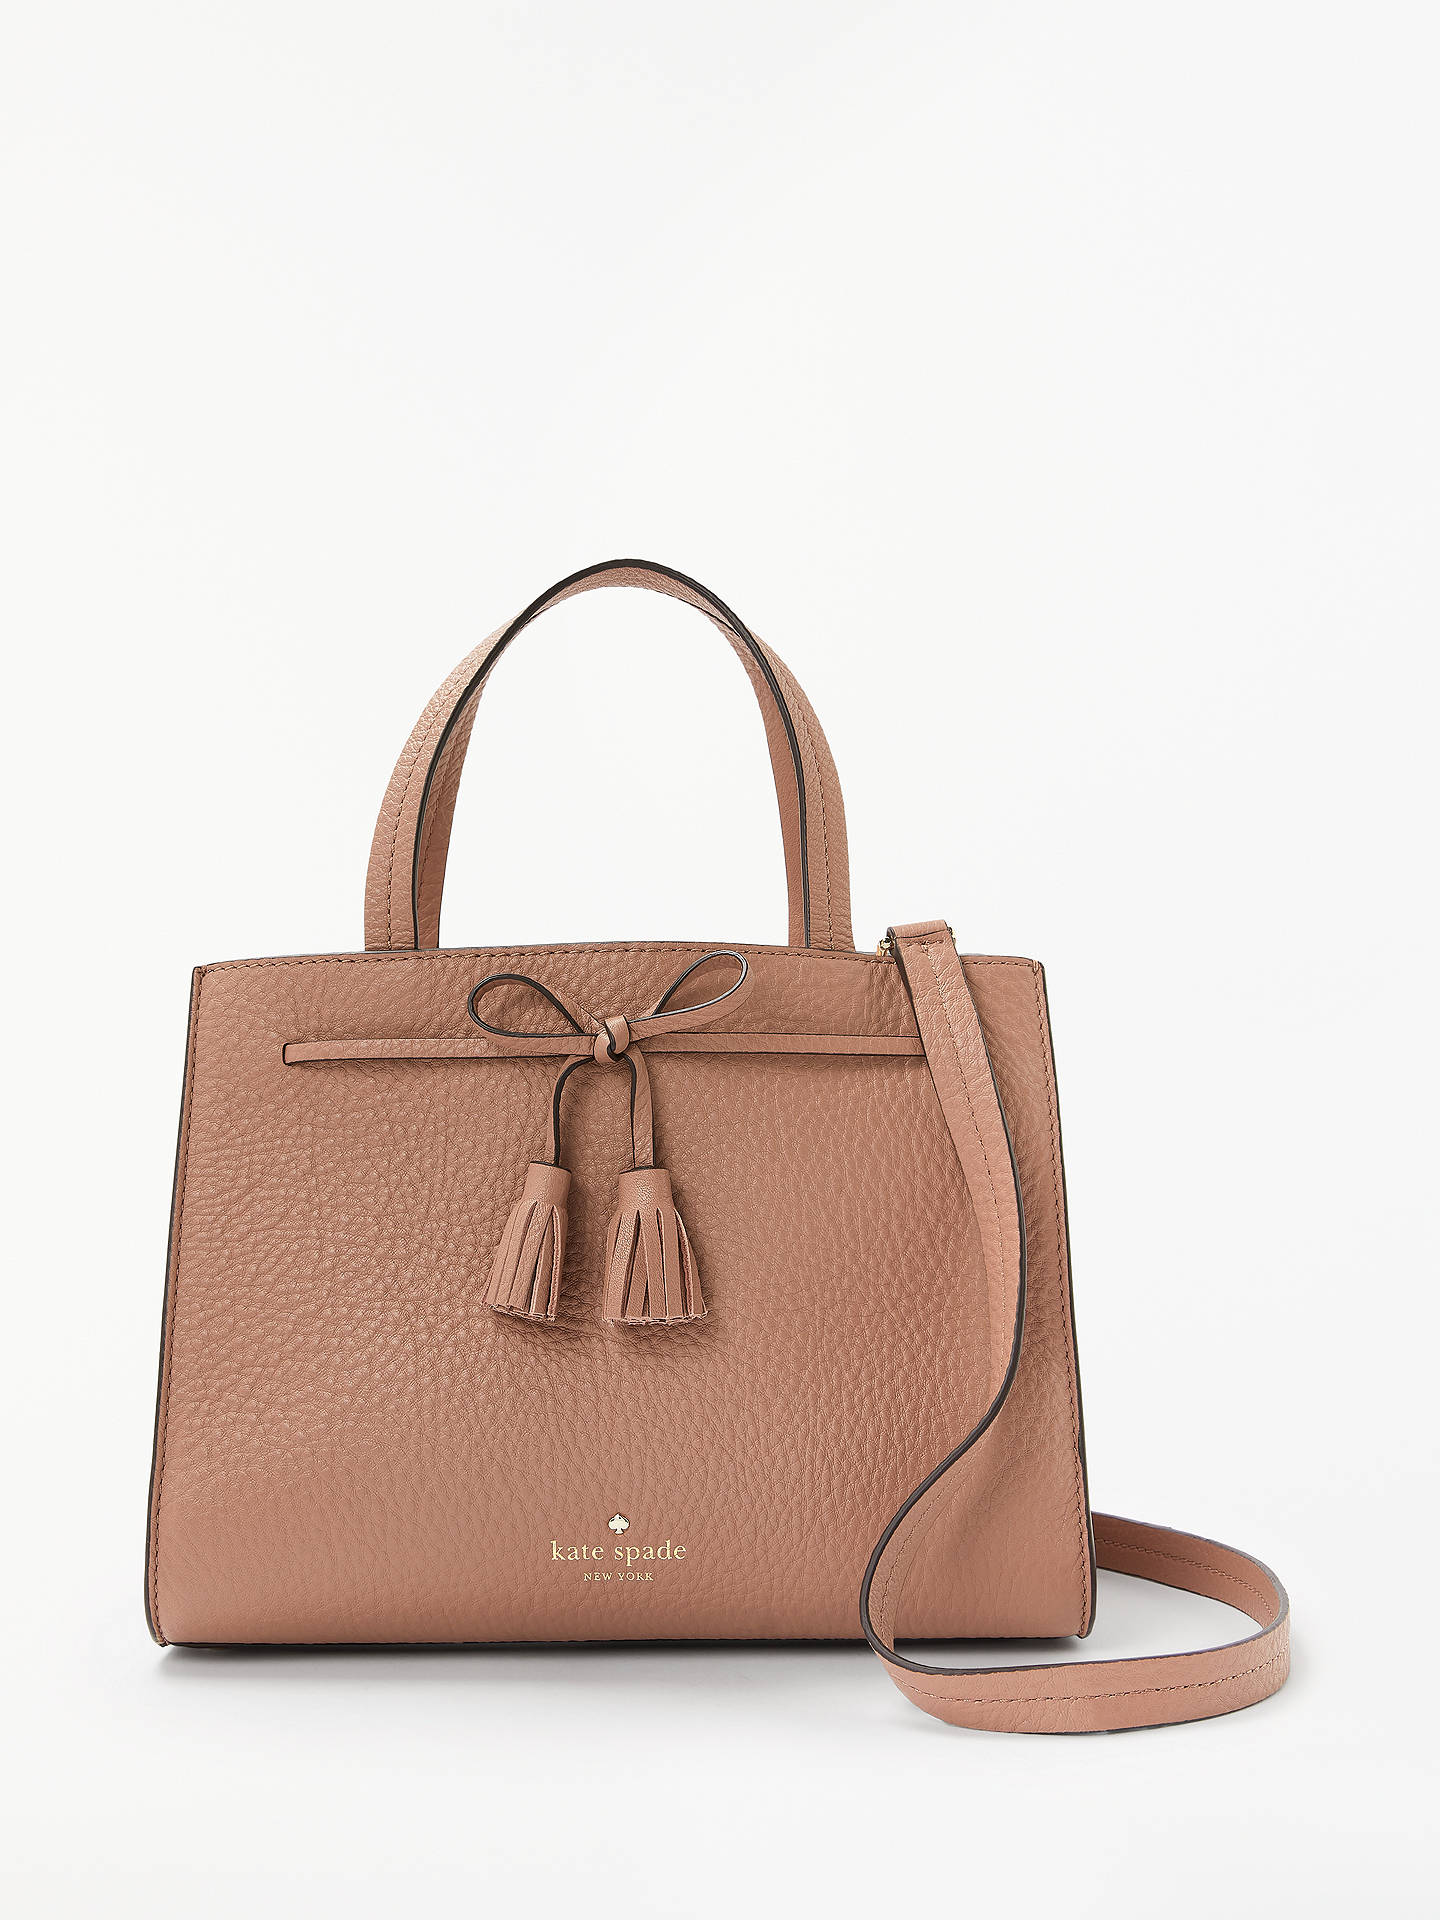 f257194f9f10 Buy kate spade new york Hayes Street Leather Satchel Bag, Sparrow Online at  johnlewis.